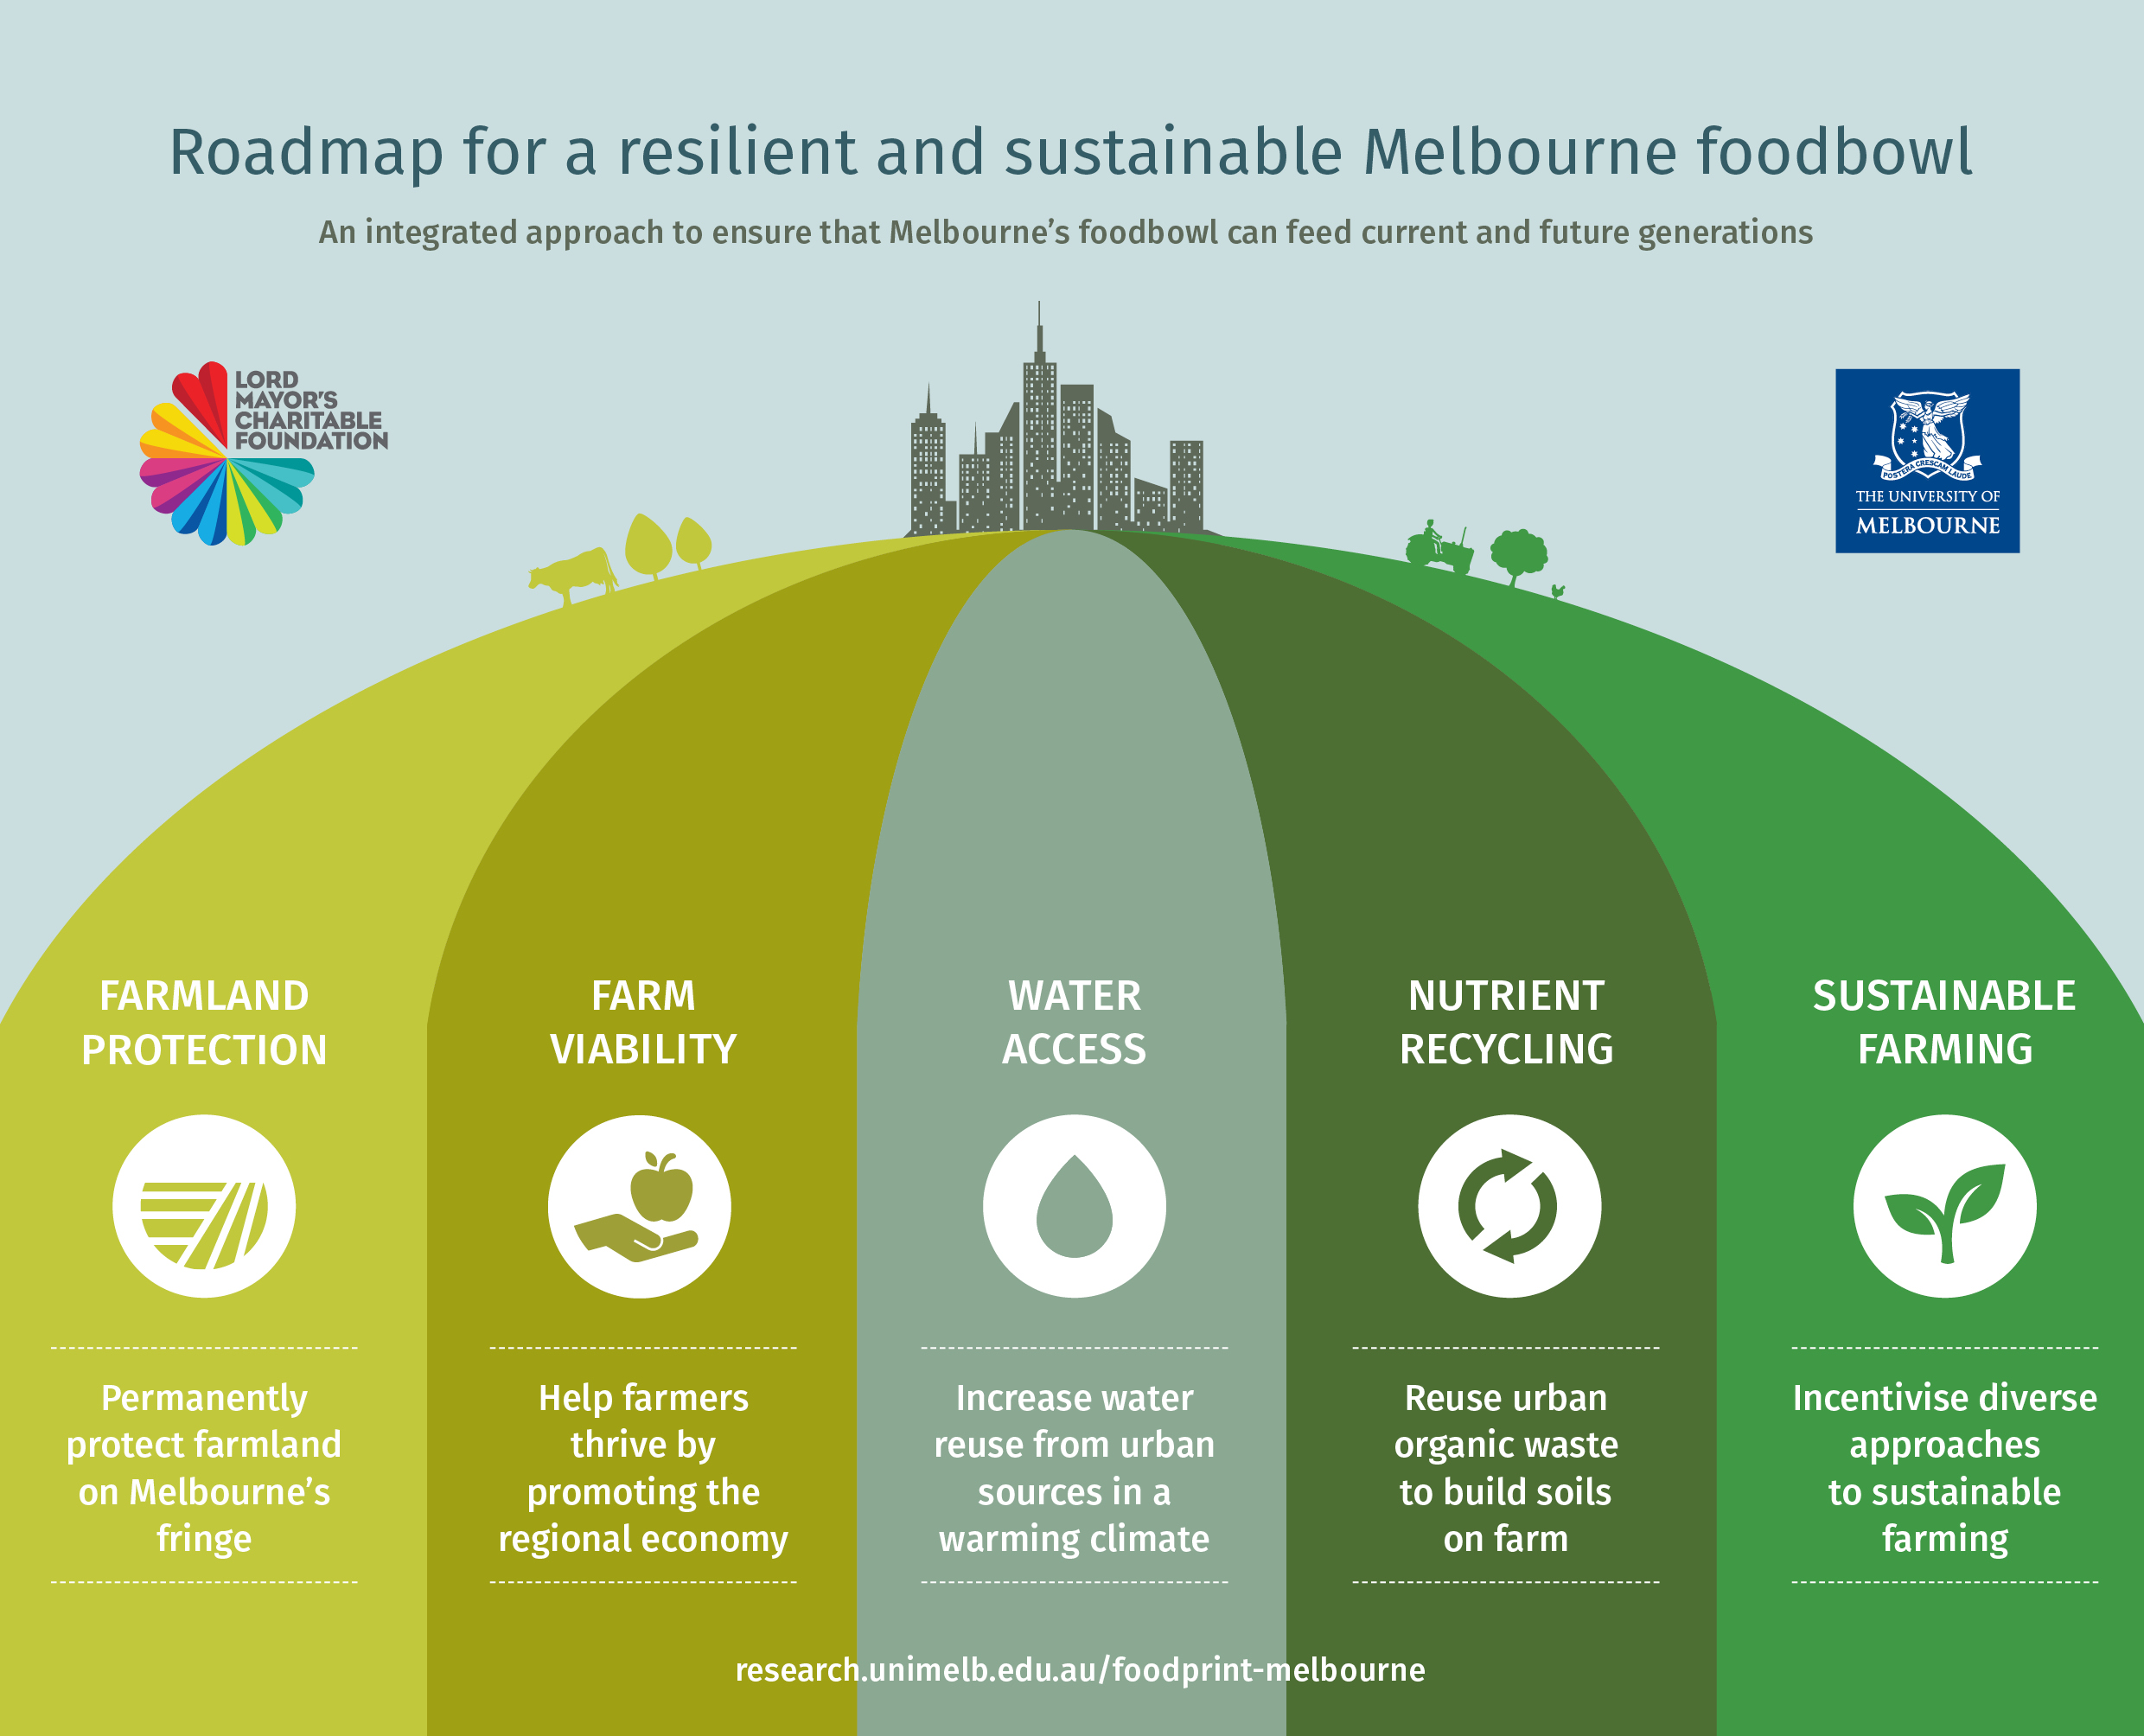 Image shows the five key policy areas - farmland protection, farm viability, water access, nutrient recycling, and sustainable farming - supporting the city of Melbourne.